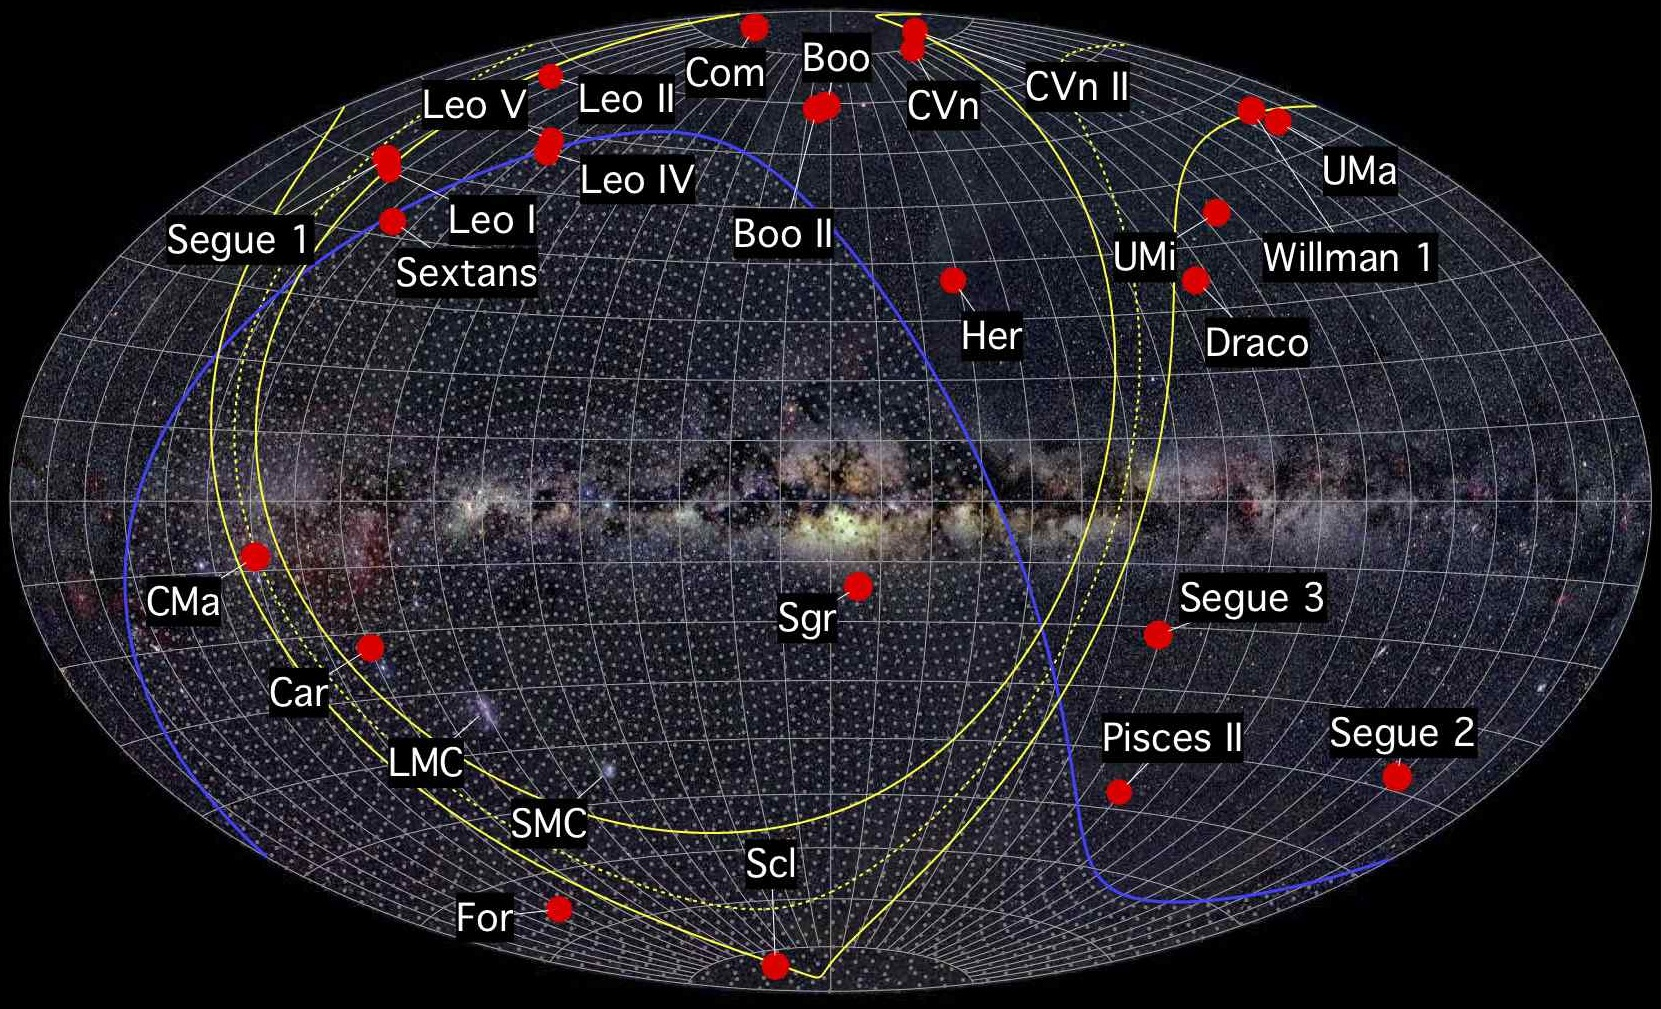 irvine california map with New Estimate Suggests Milky Way Mass Of 1 6 Trillion Suns on Laguna Beach furthermore C usmap as well Modesto California Map likewise Index additionally Honda Center.